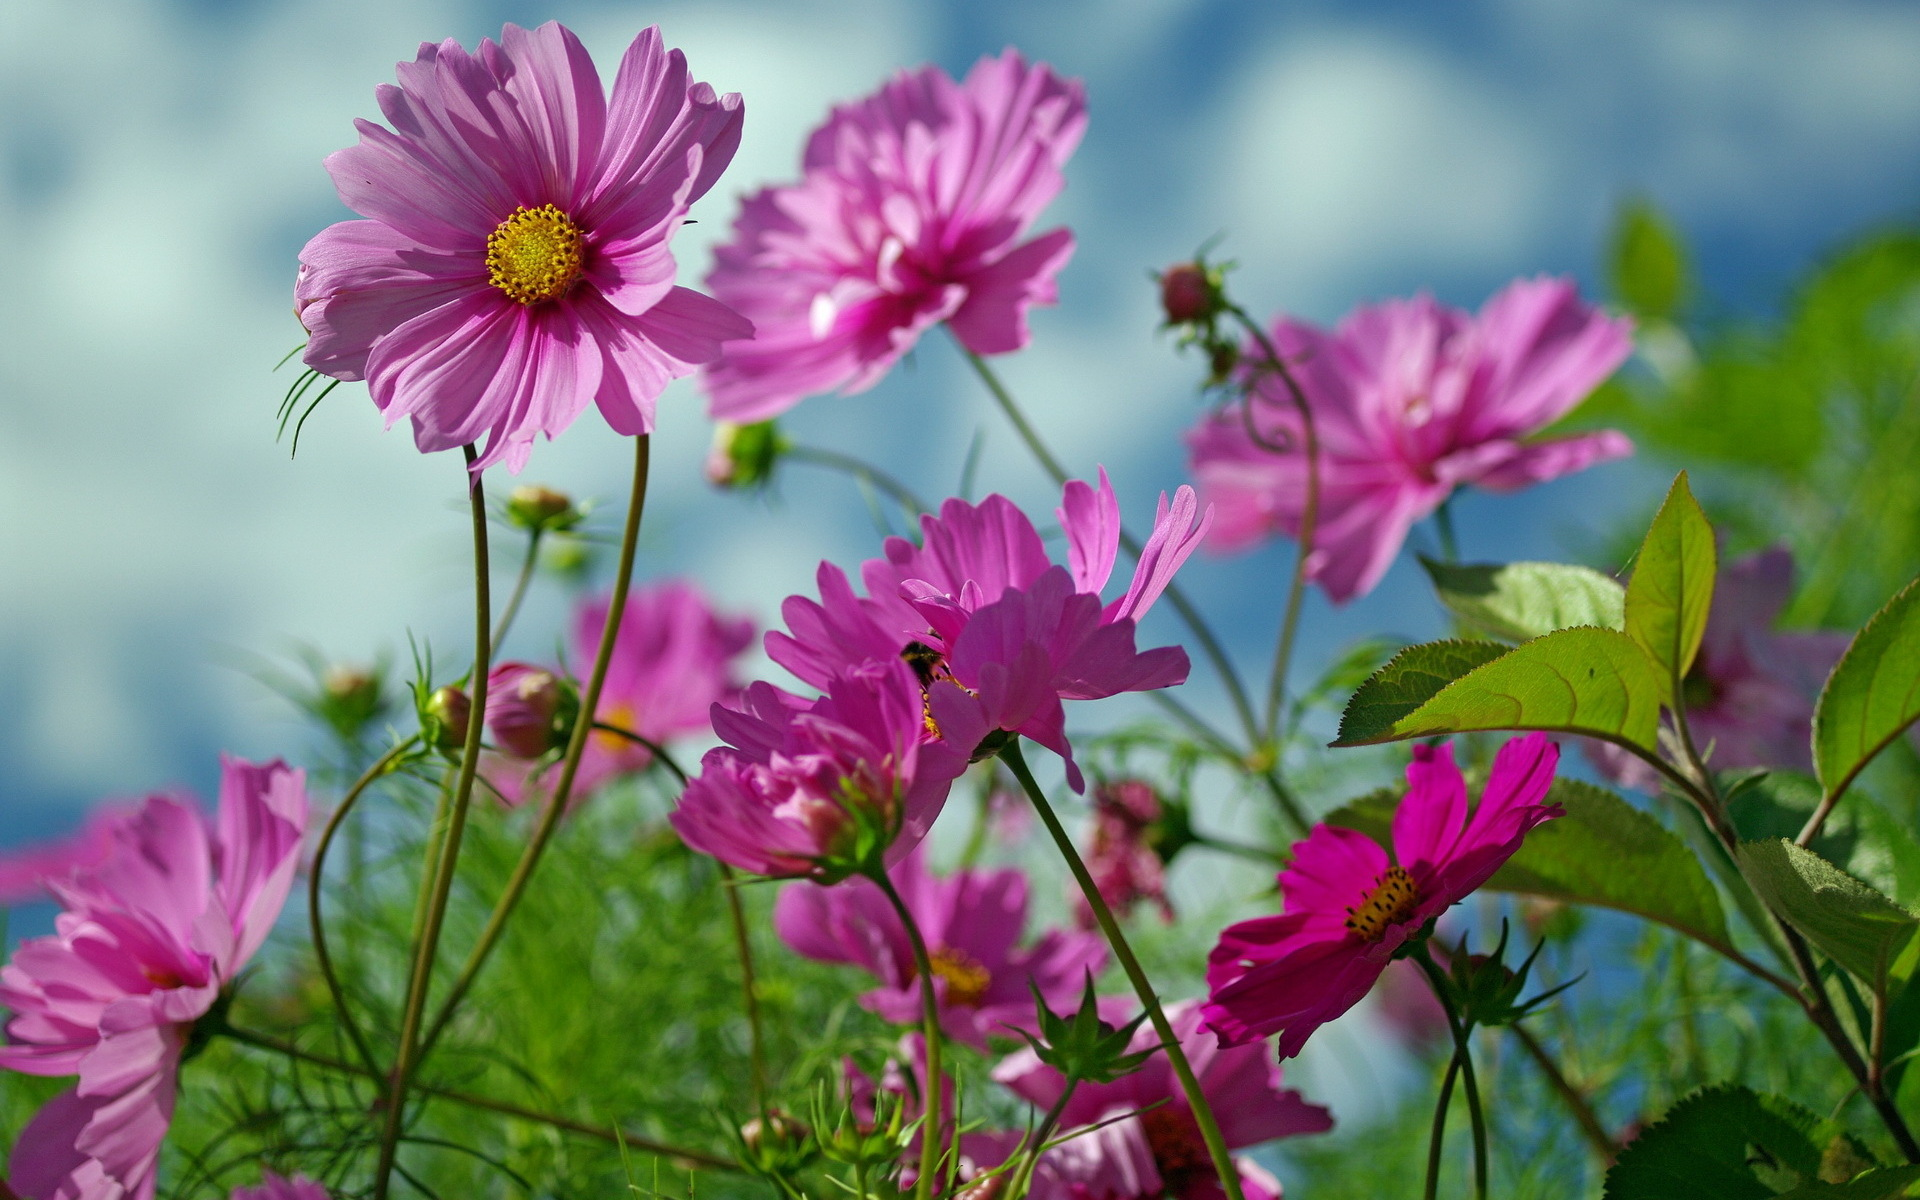 Summer Flowers Beauty 1920 x 1200 Download Close 1920x1200